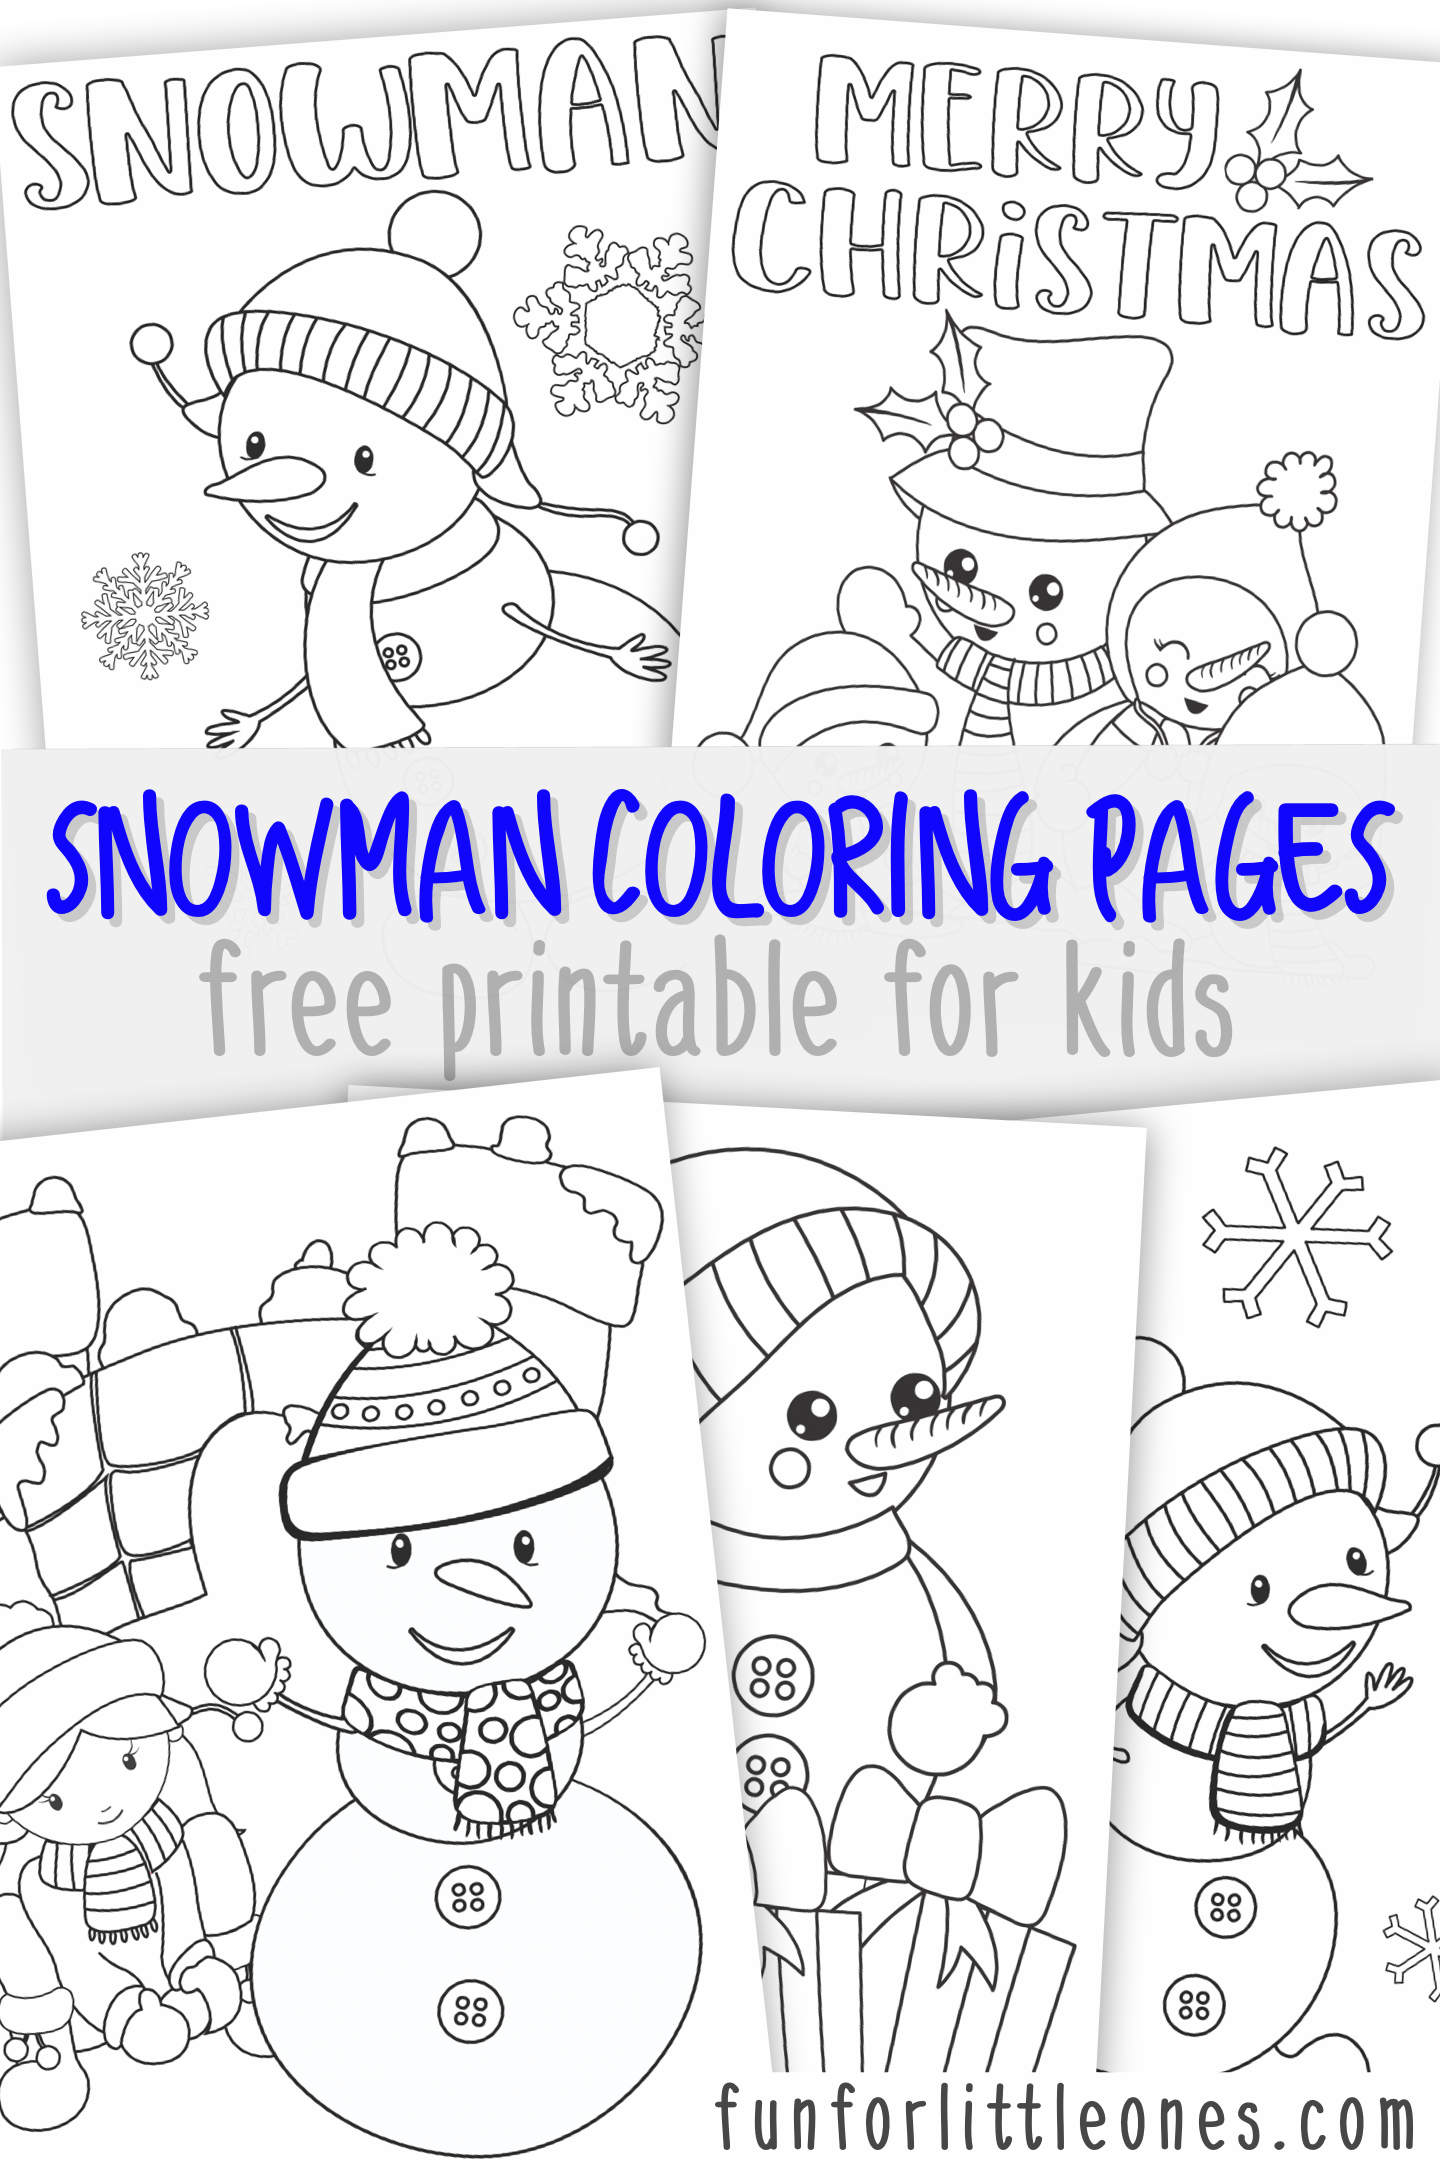 Snowman Coloring Pages For Kids Free Printable